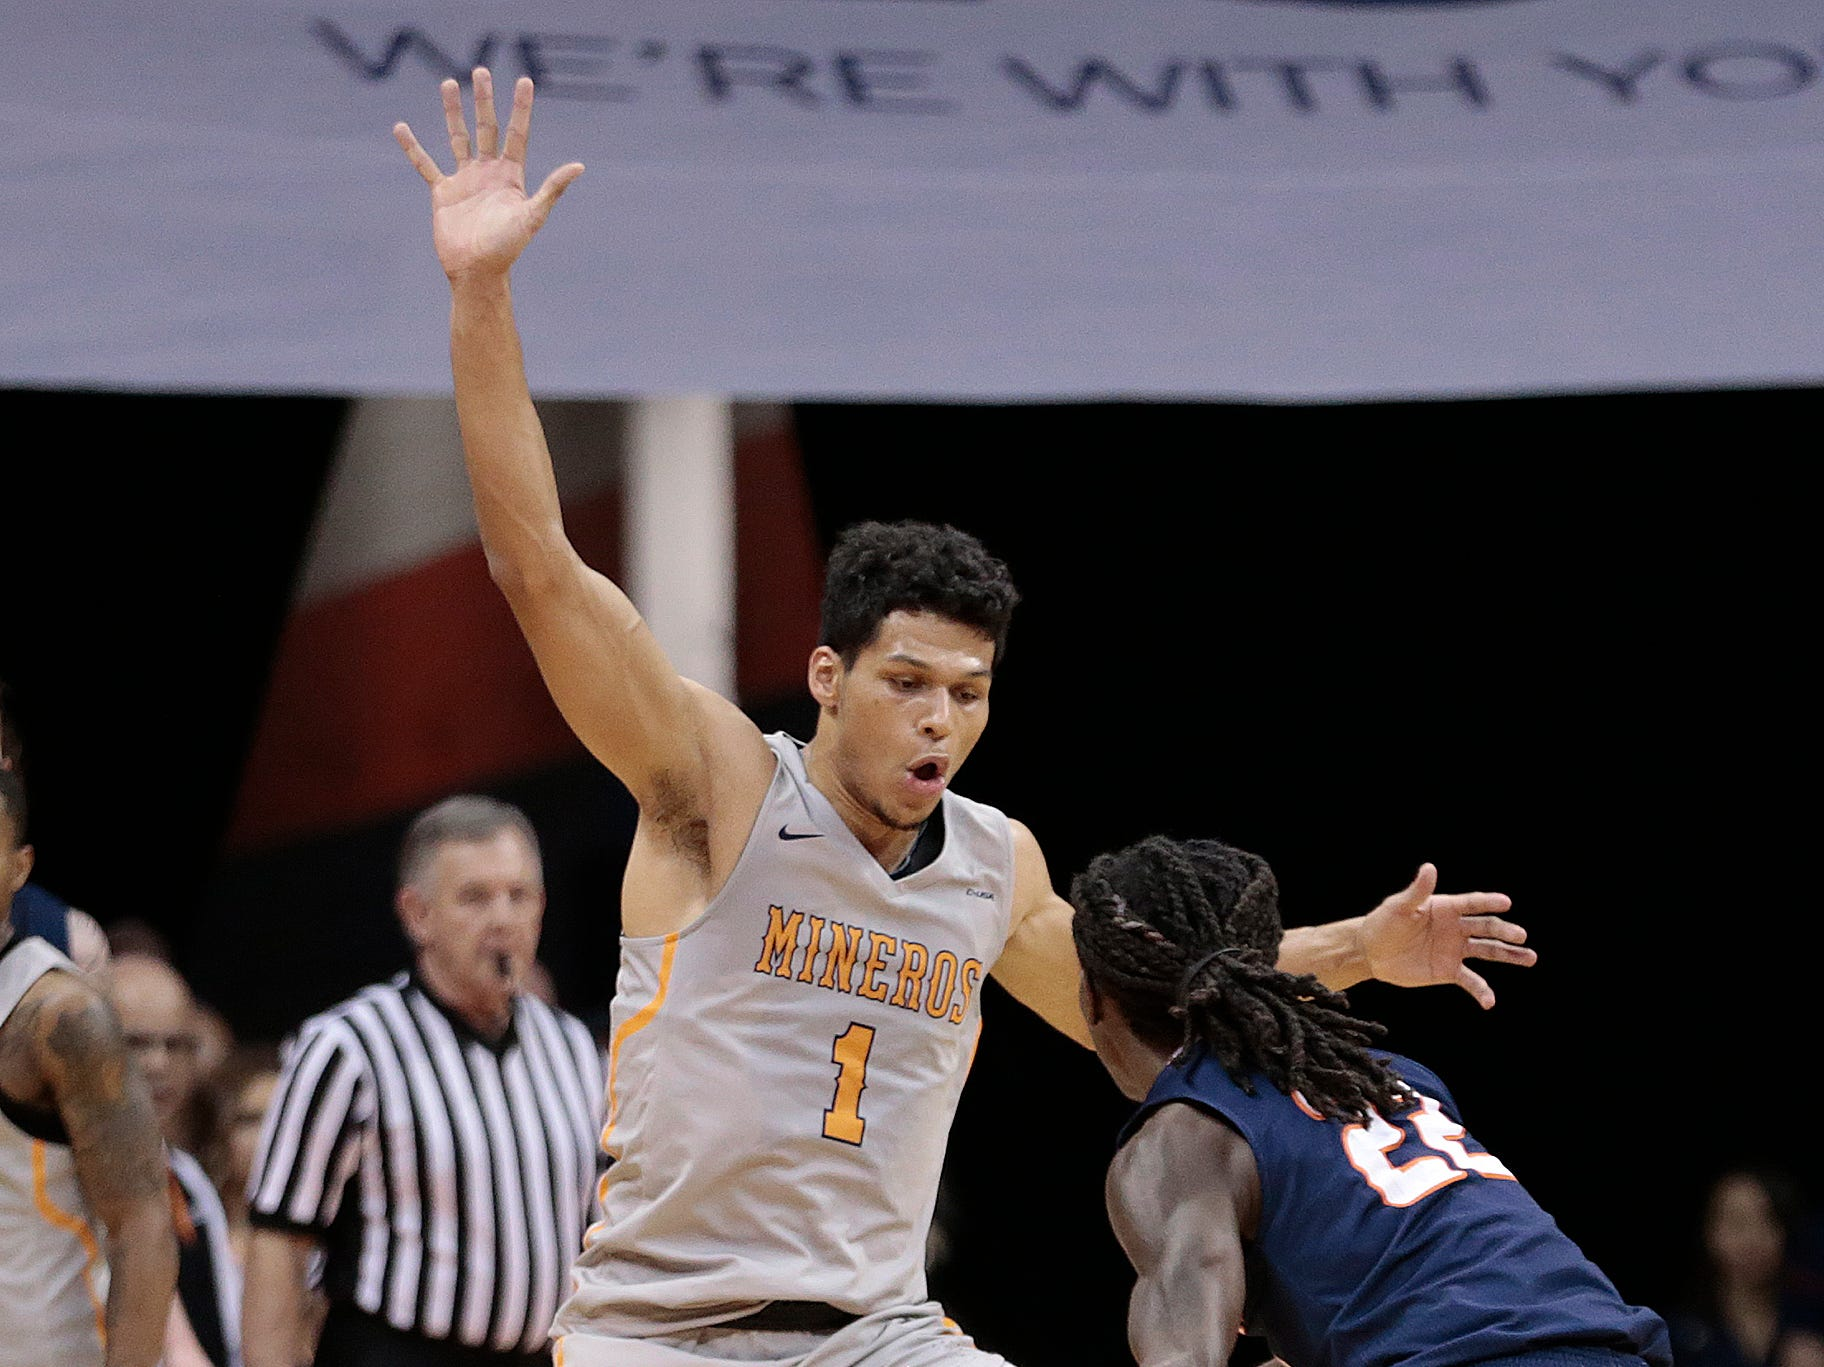 UTEP lost a close game to UTSA recently at the Don Haskins Center. UTEP was coming off a road loss at UTSA.